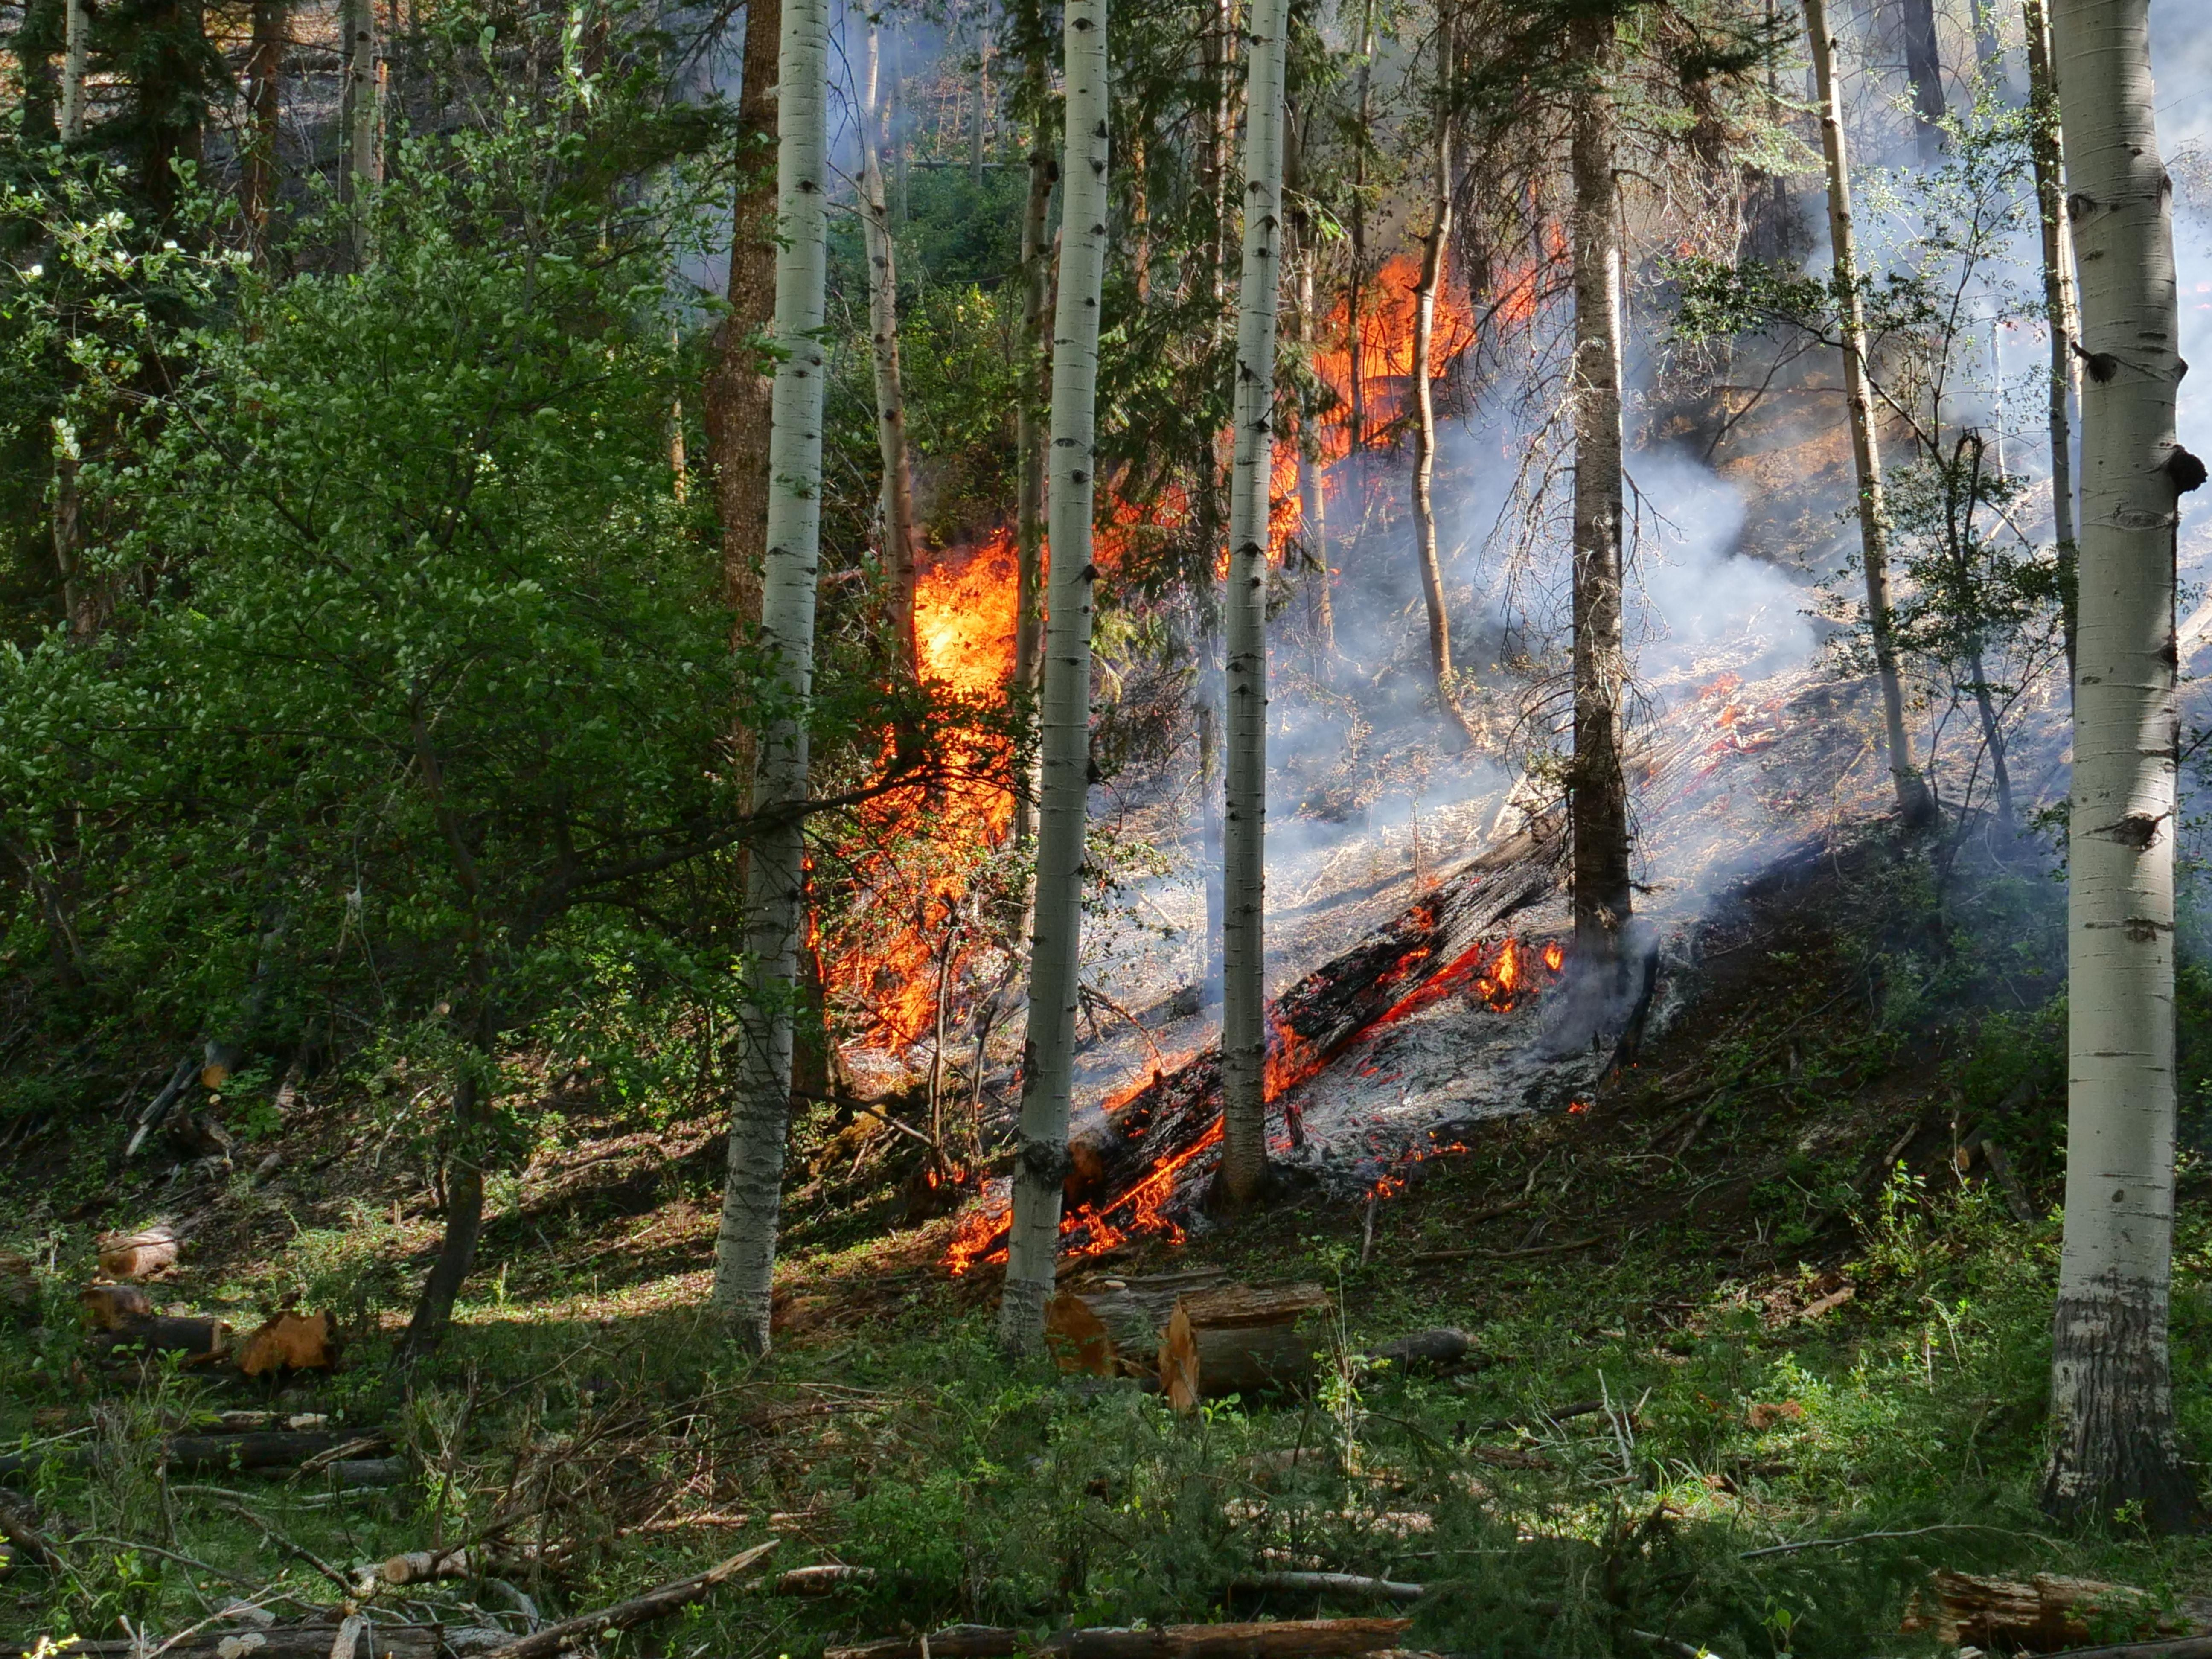 Fire burns on the ground in an aspen grove on the Loading Pen Fire.